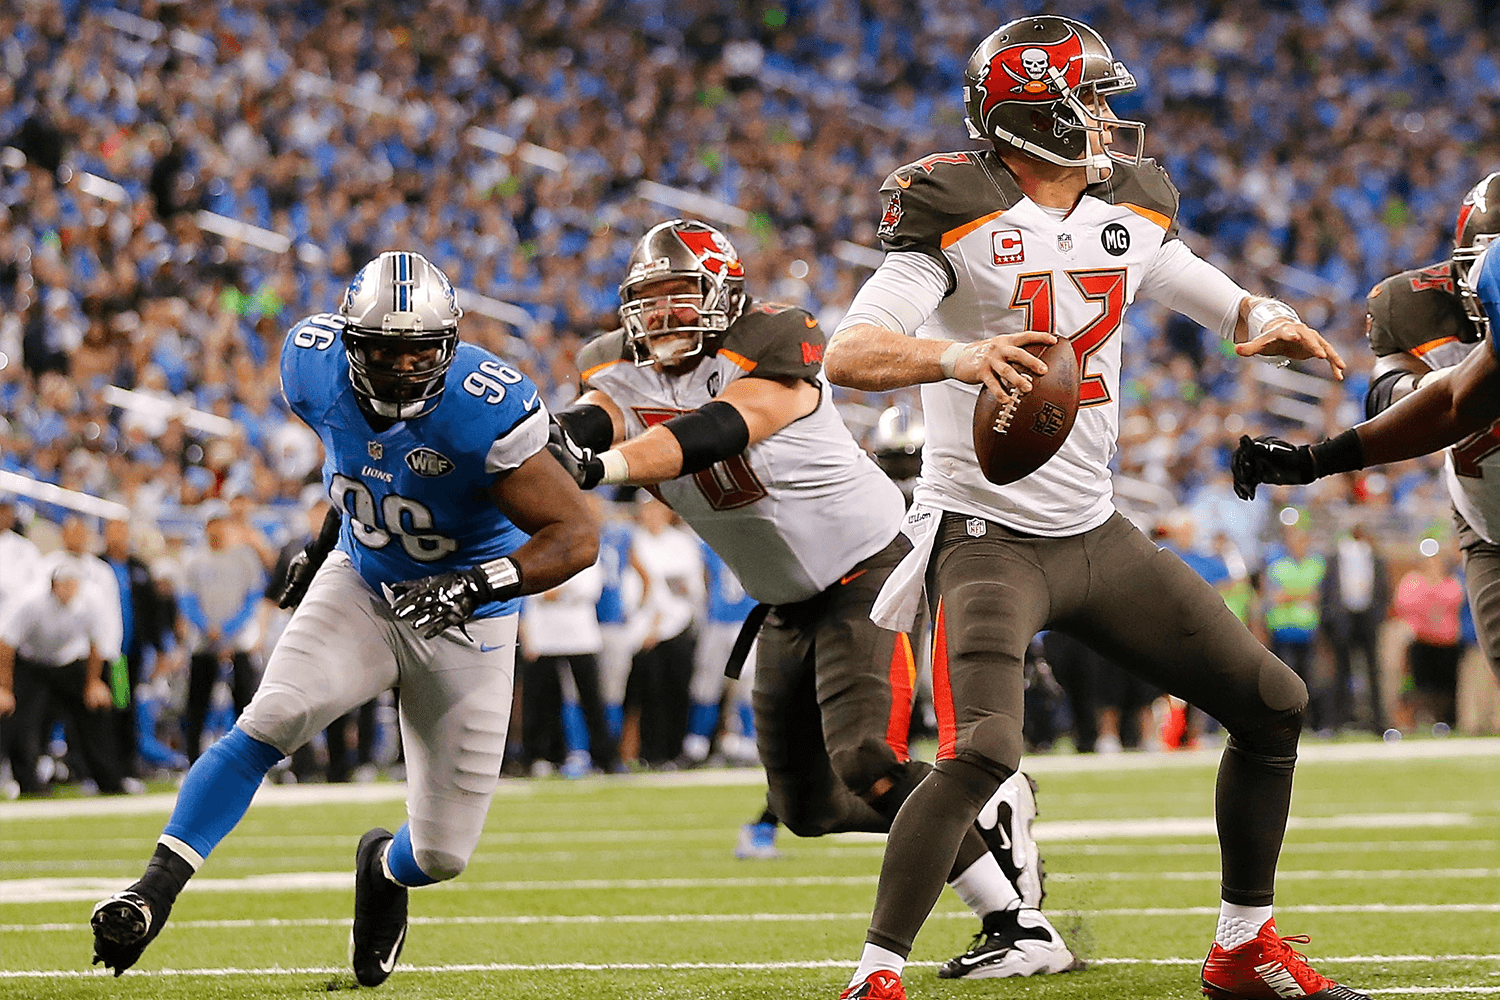 Andre Fluellen of the Detroit Lions rushes Josh McCown of the Tampa Bay Buccaneers in 2014. (Leon Halip/Getty Images)